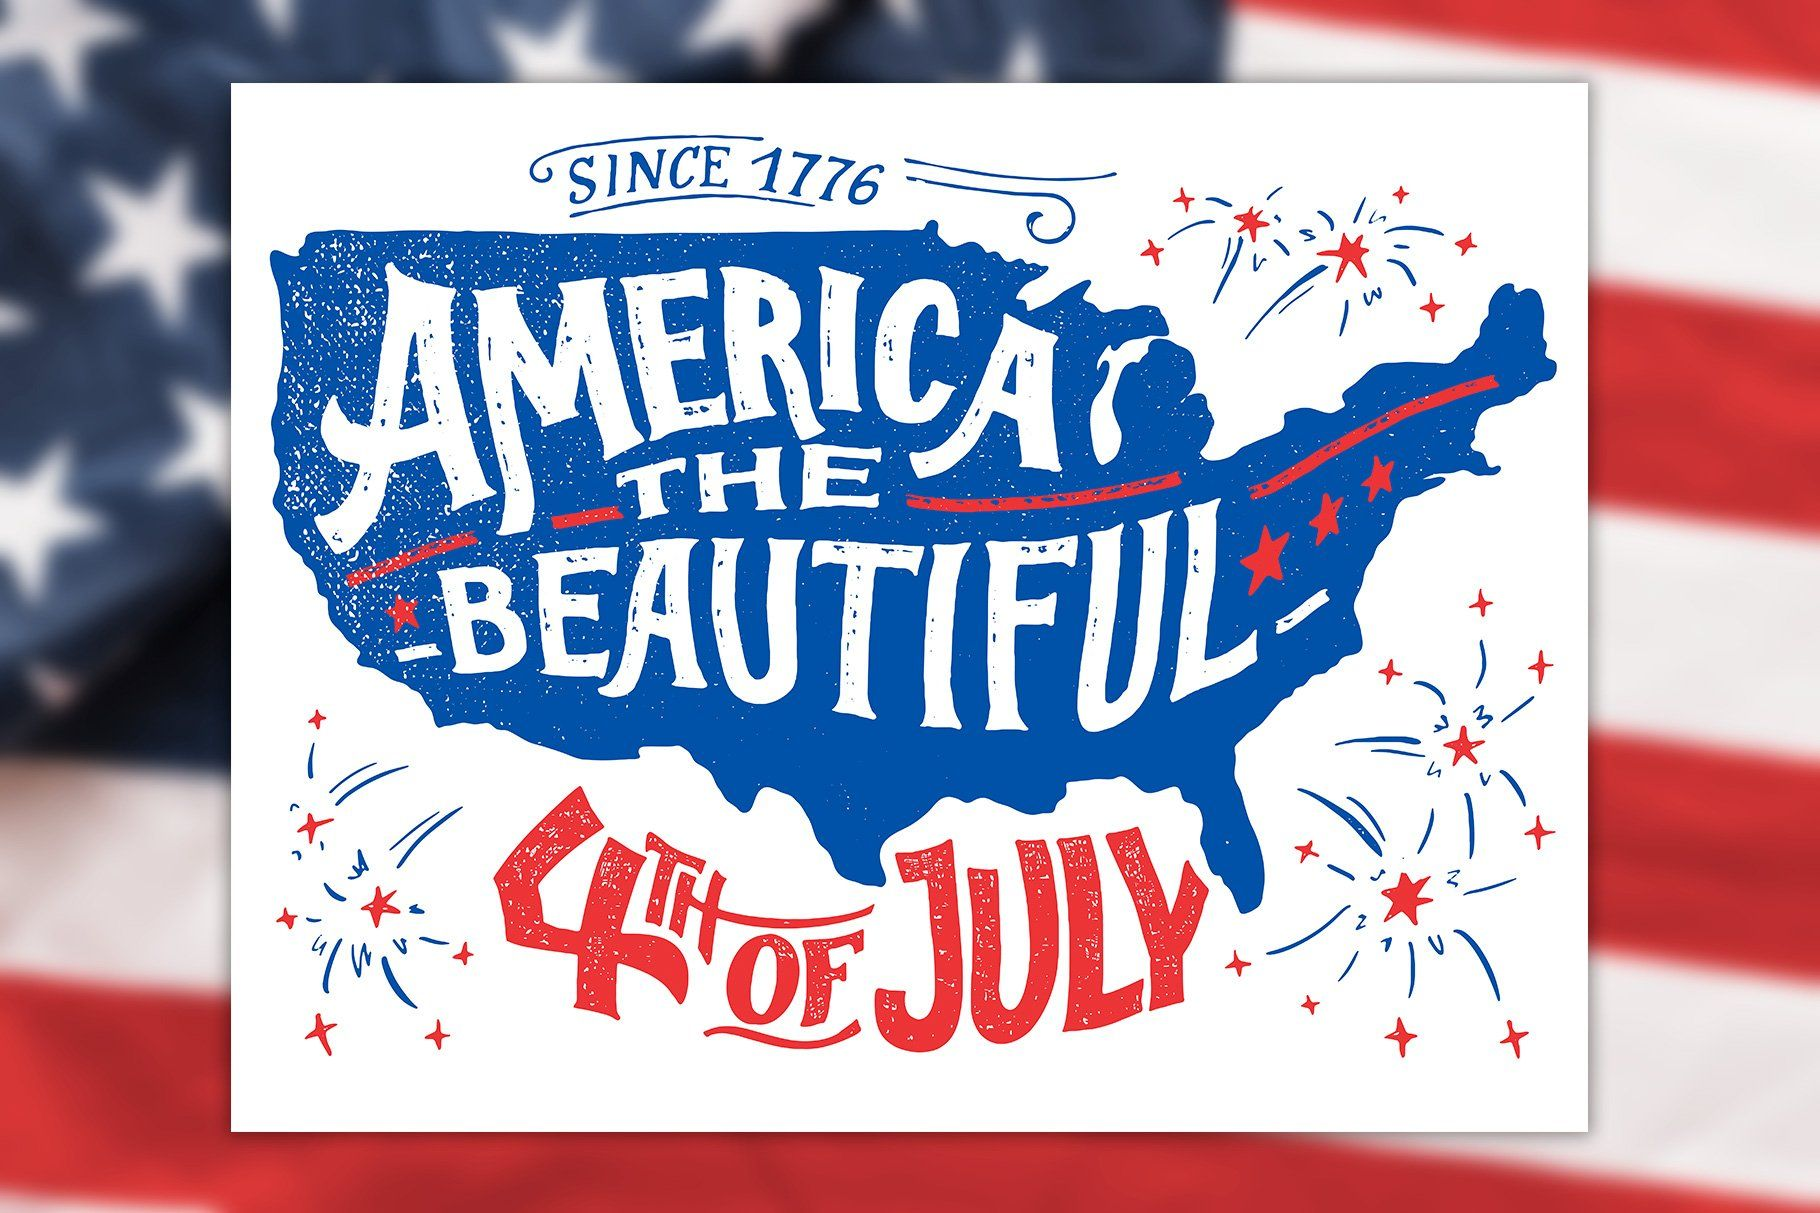 America The Beautiful 4th Of July 4th Of July Meme 4th Of July 4th Of July Photography